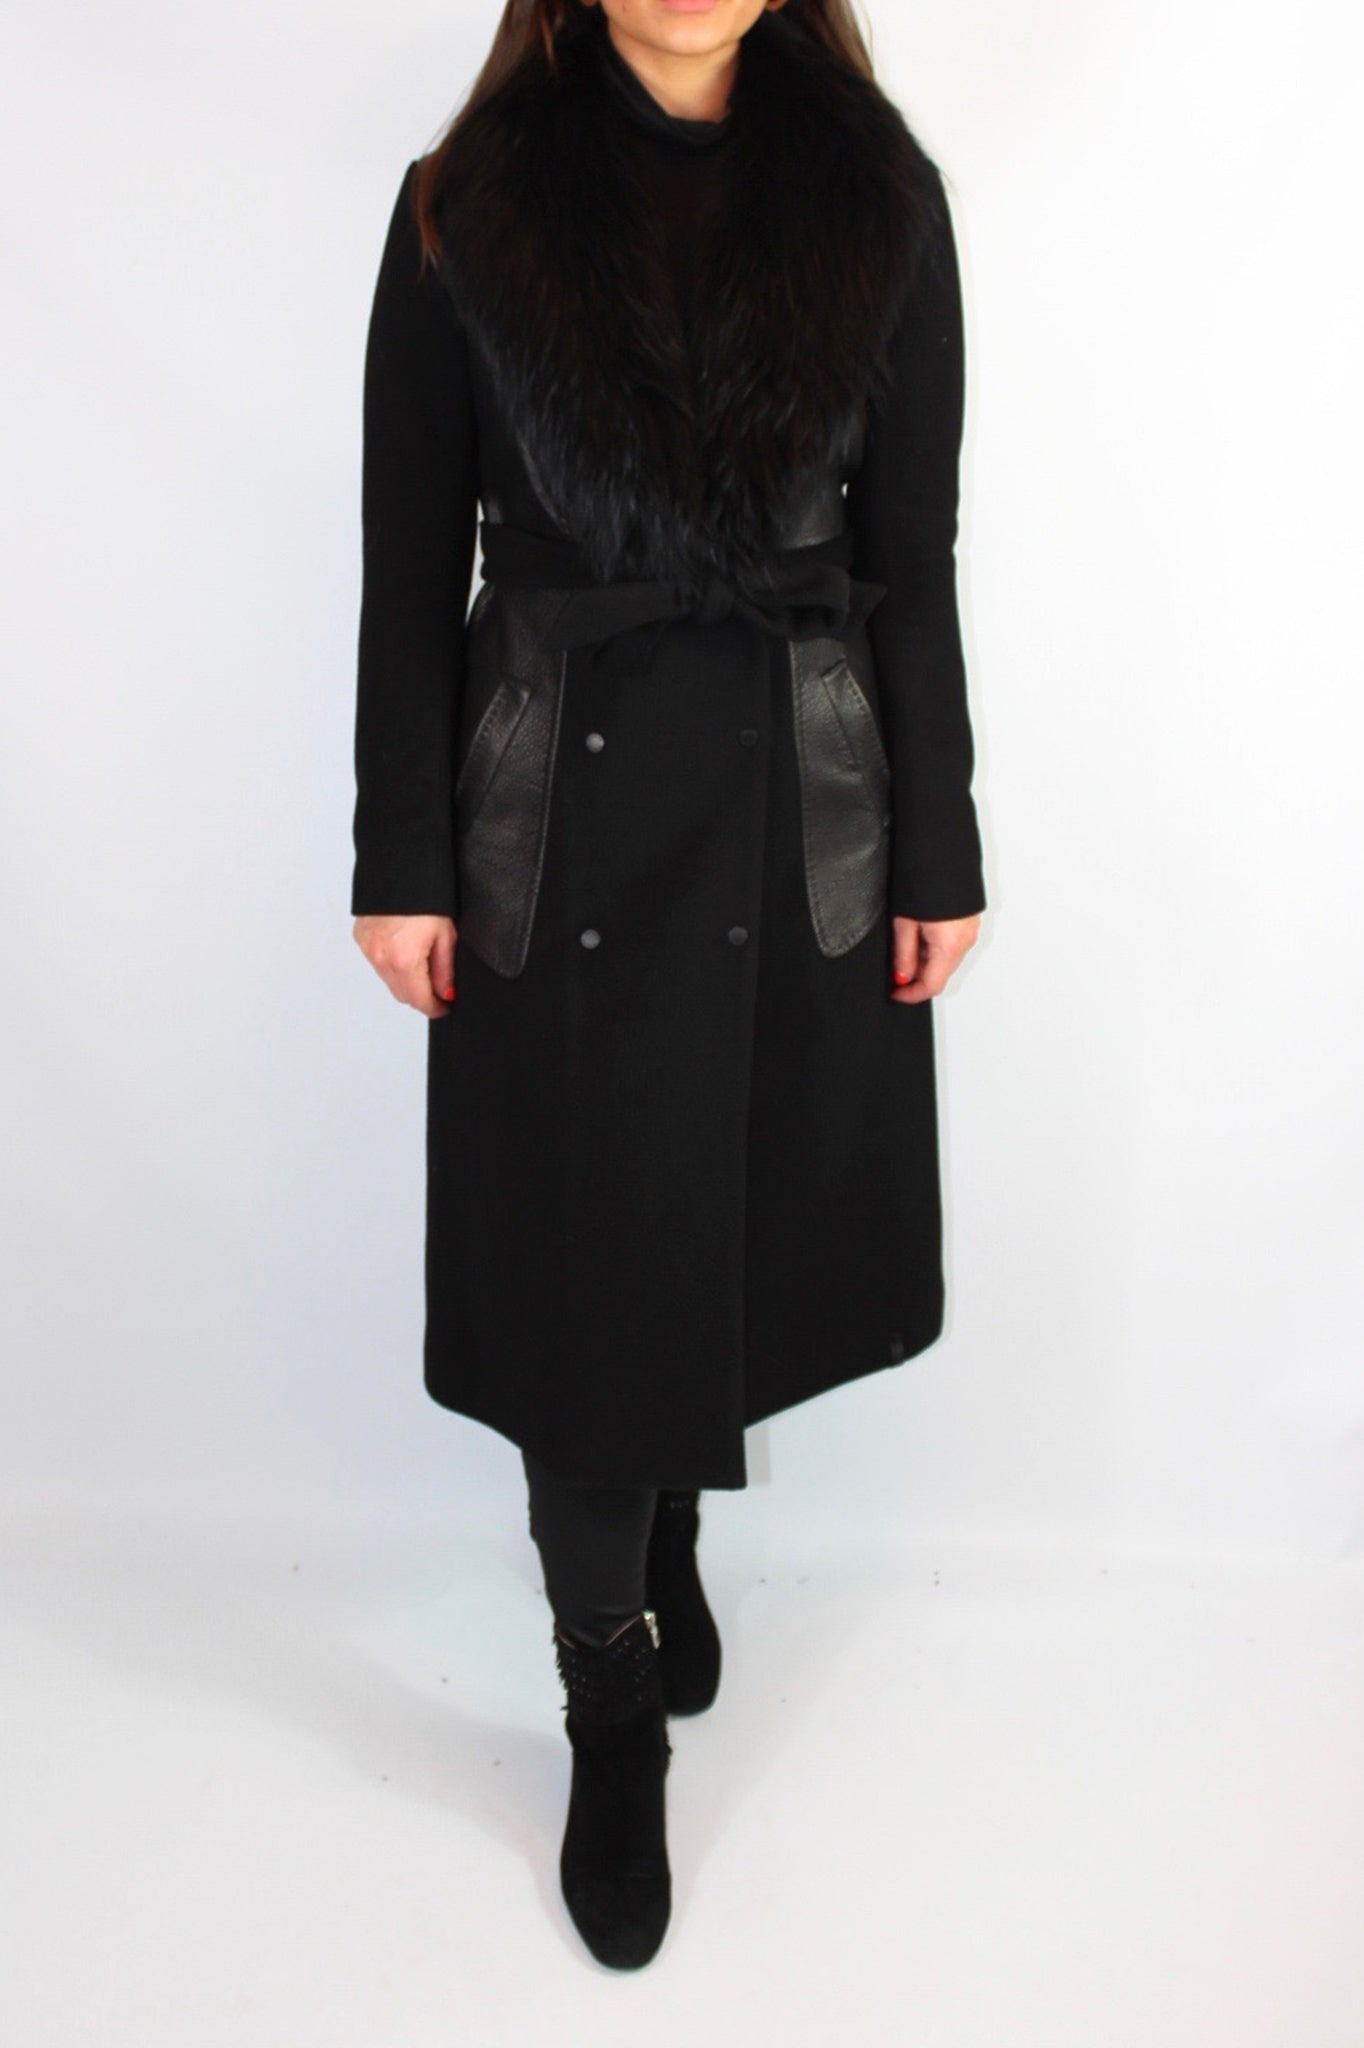 Rudsak Black Wool and Leather Belted Trench Coat